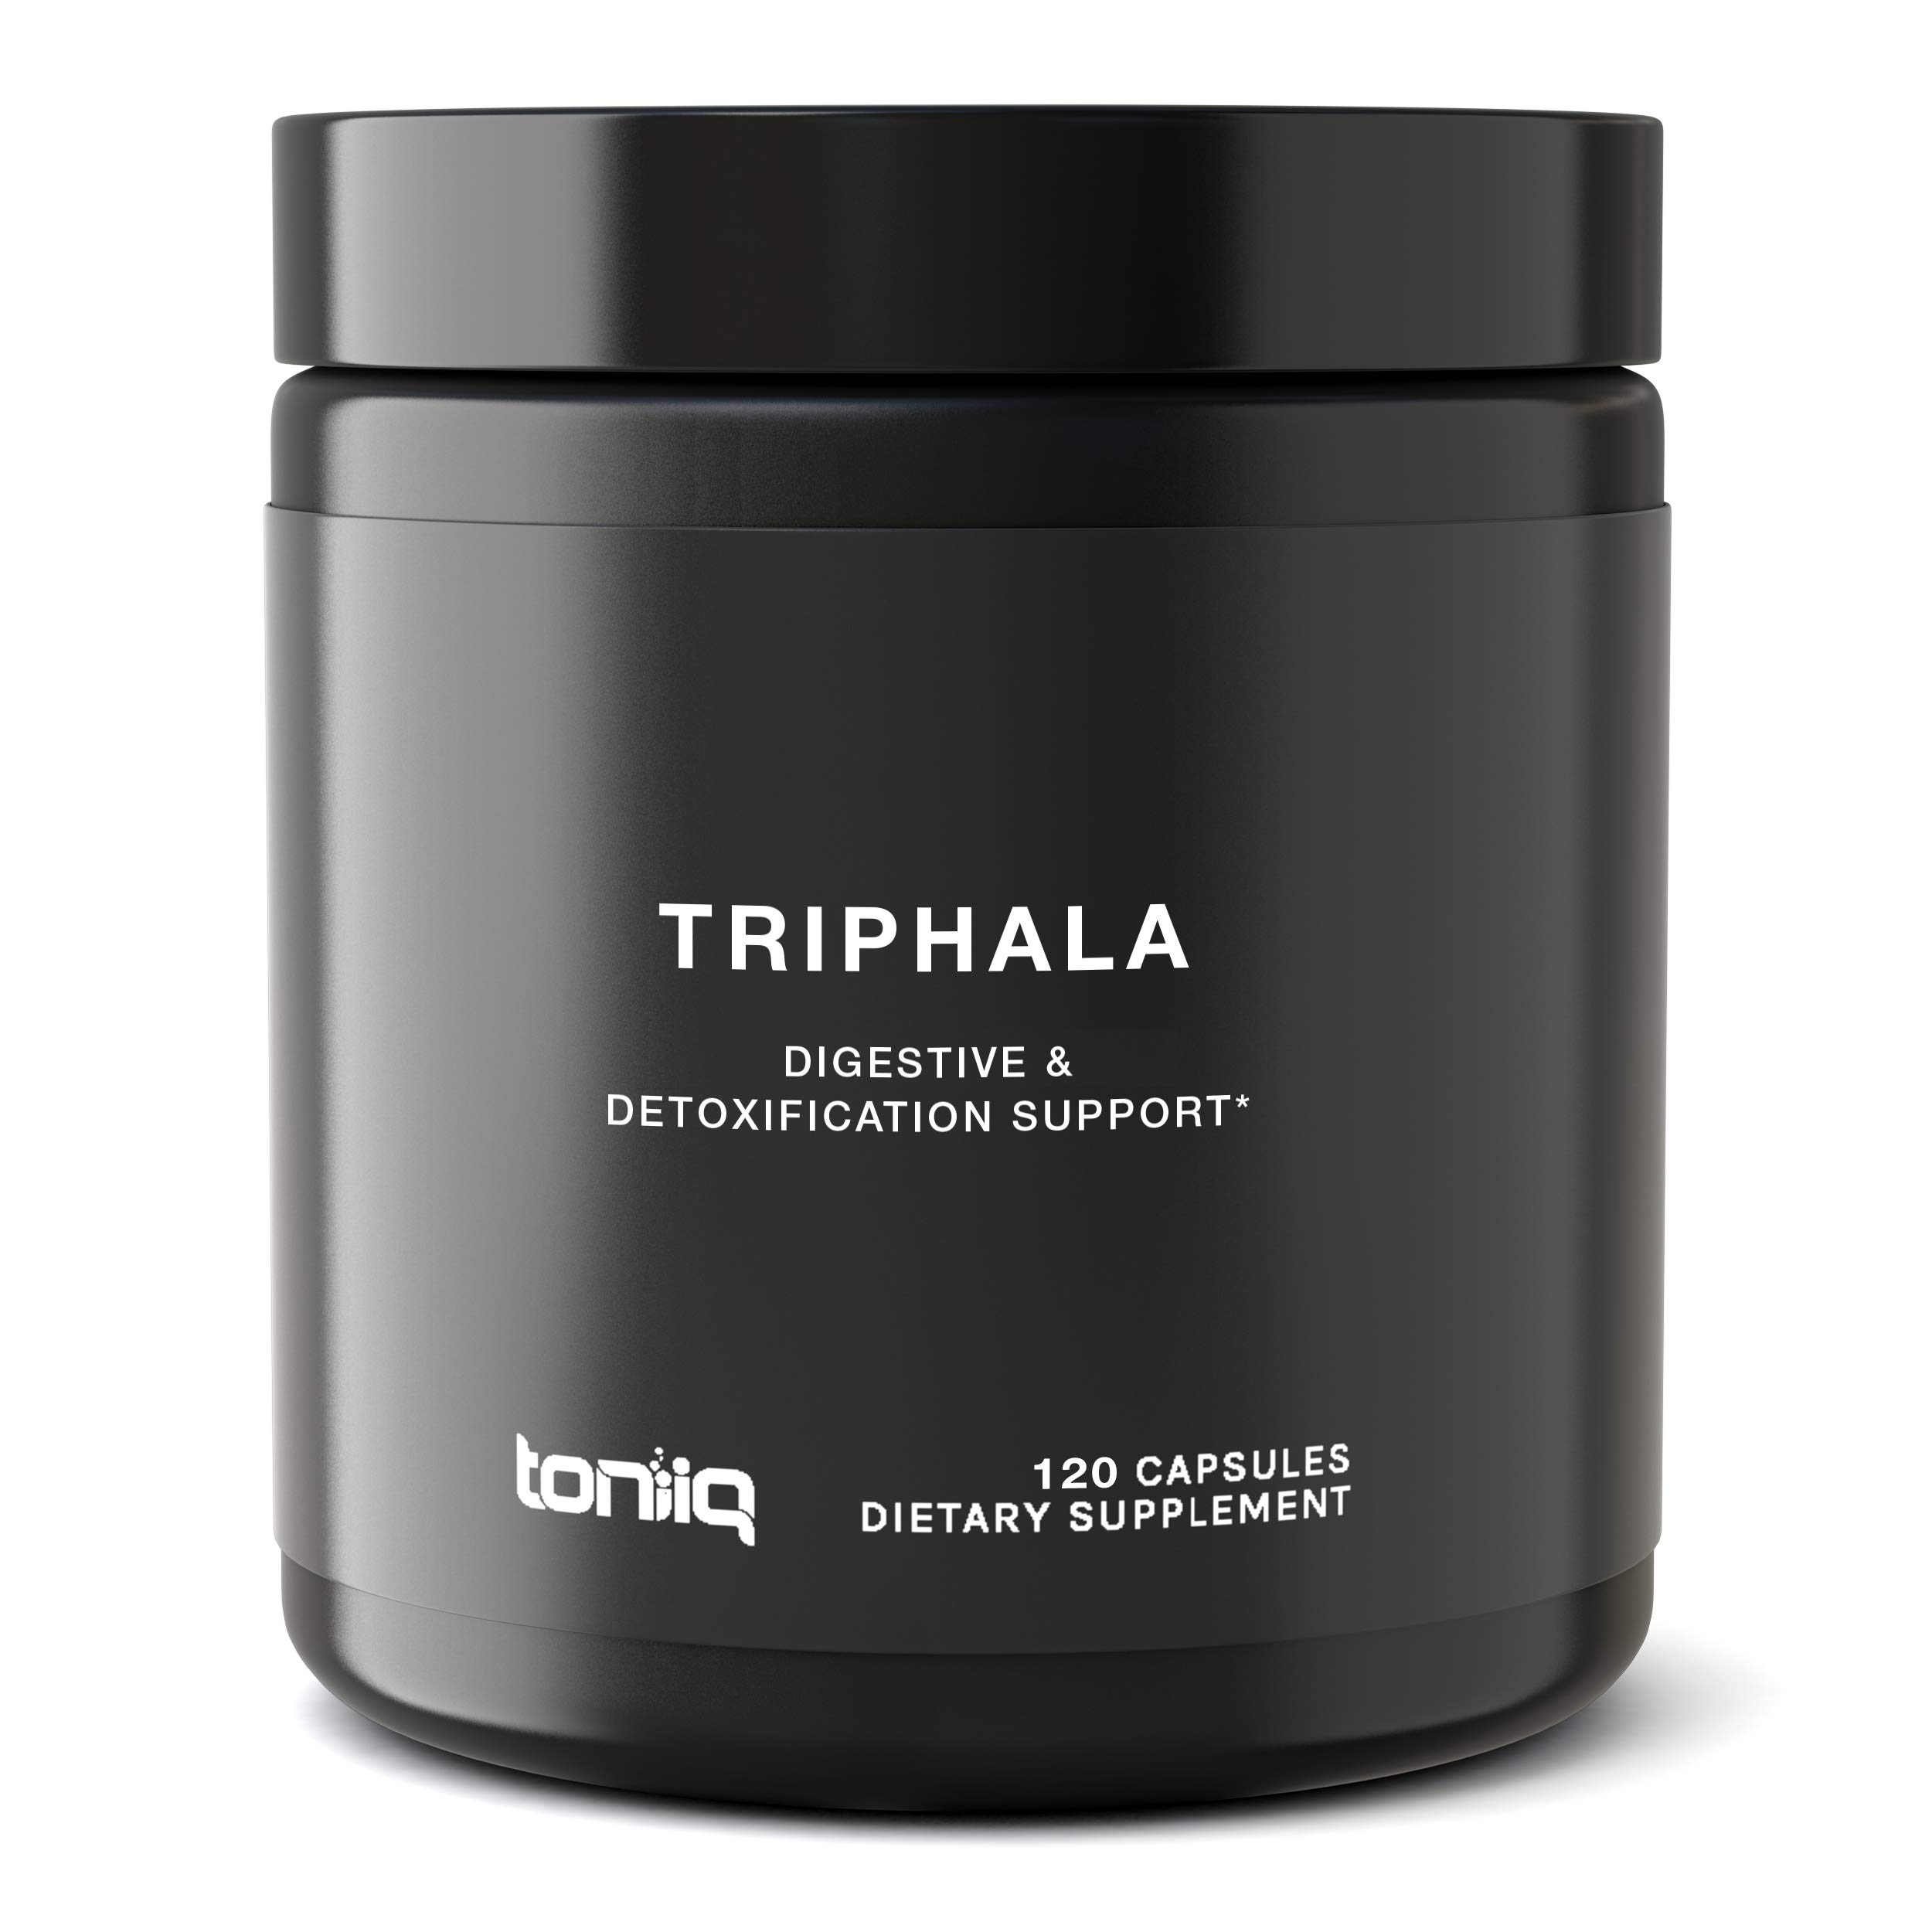 Ultra High Strength Indian Triphala Capsules - 1200mg - 50% Tannins Extract - The Strongest Triphala Supplement Available - Optimal Digestive and Detoxification Support - 120 Veggie Caps